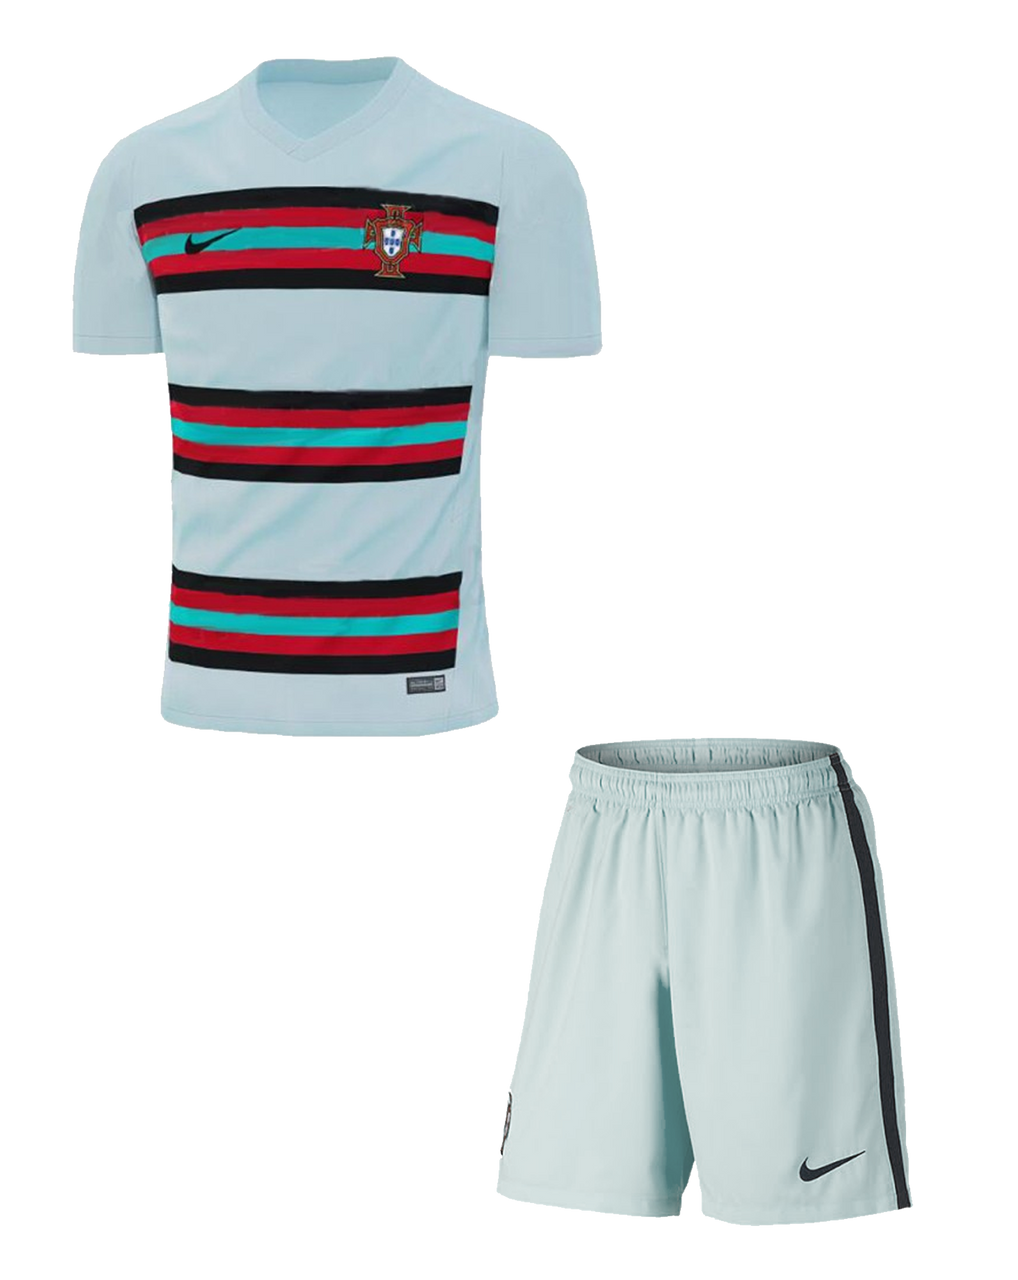 2020 Portugal Concept Away Kids Kit With Free Name And Number Coolkitdirect